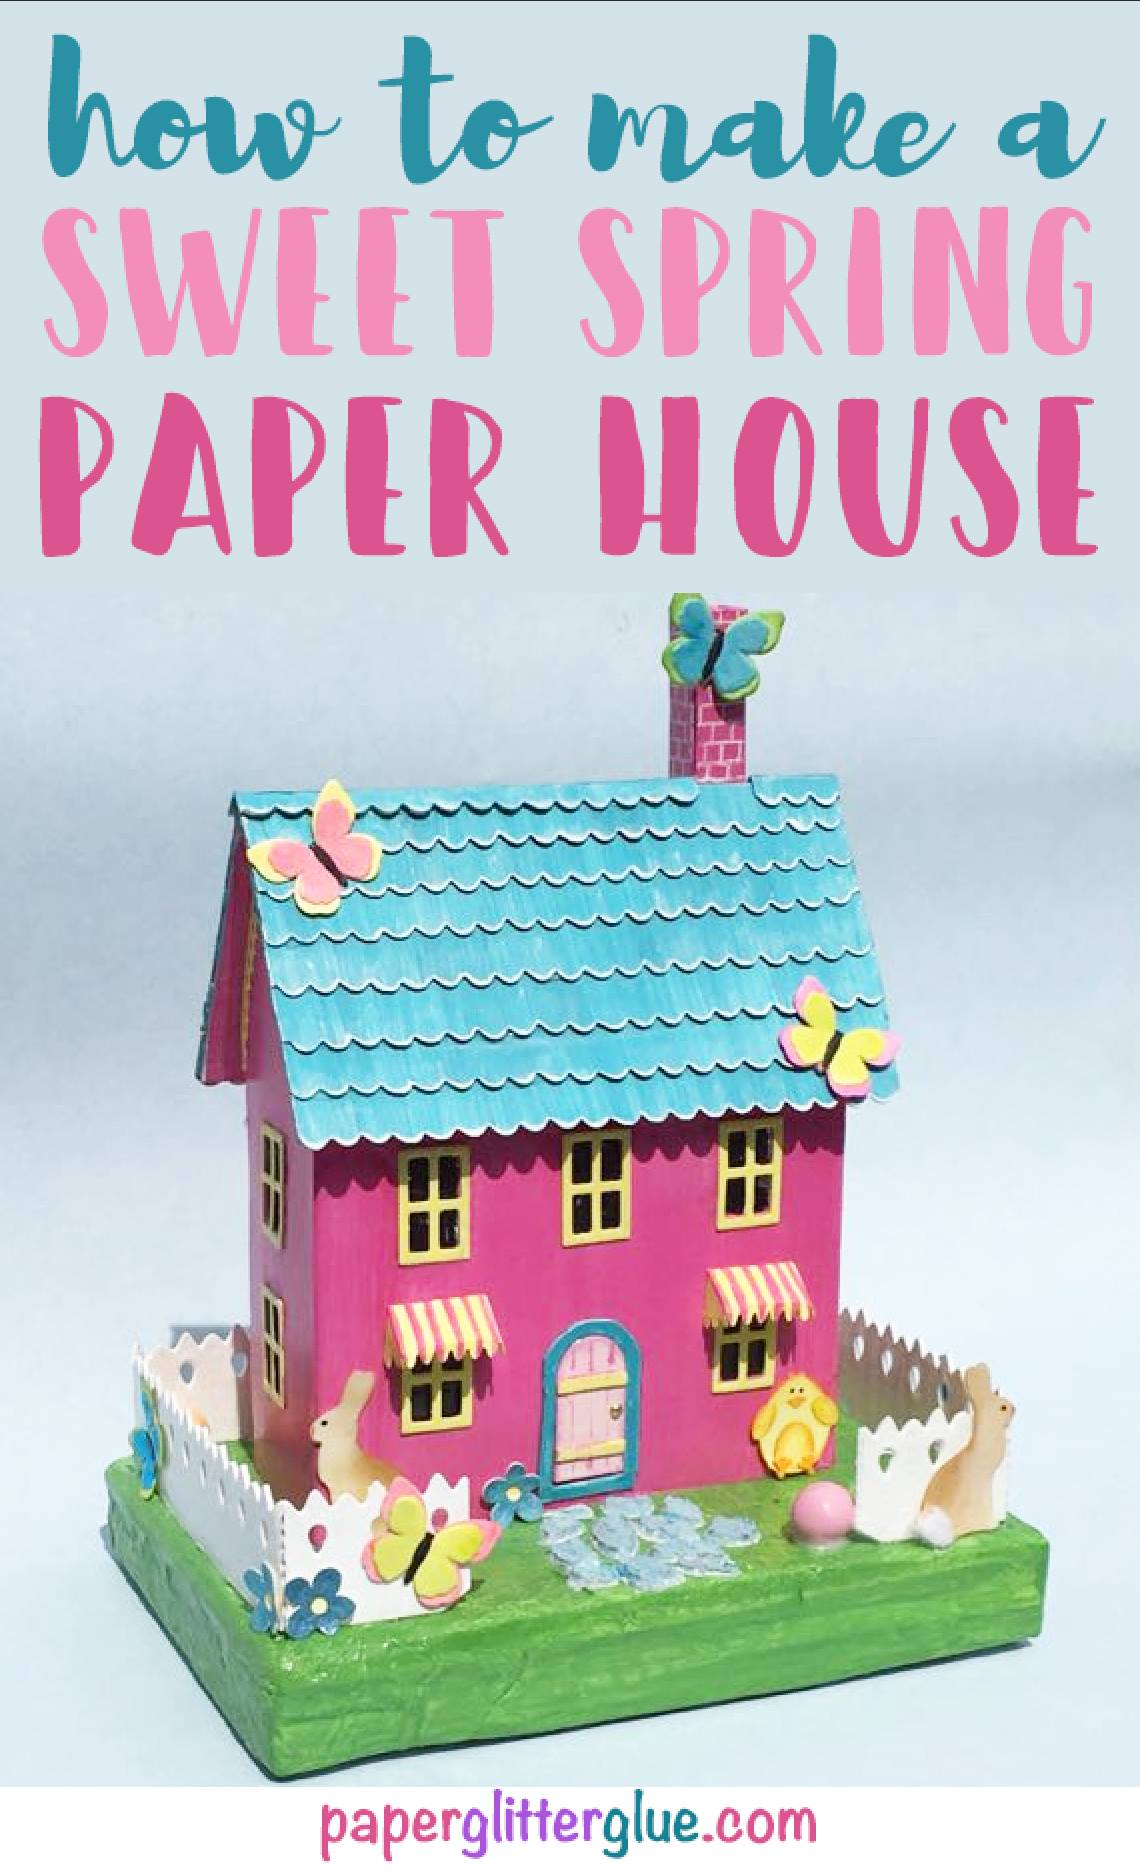 how to make a sweet spring paper house, instructions, DIY #putz house #paper house #timholtz